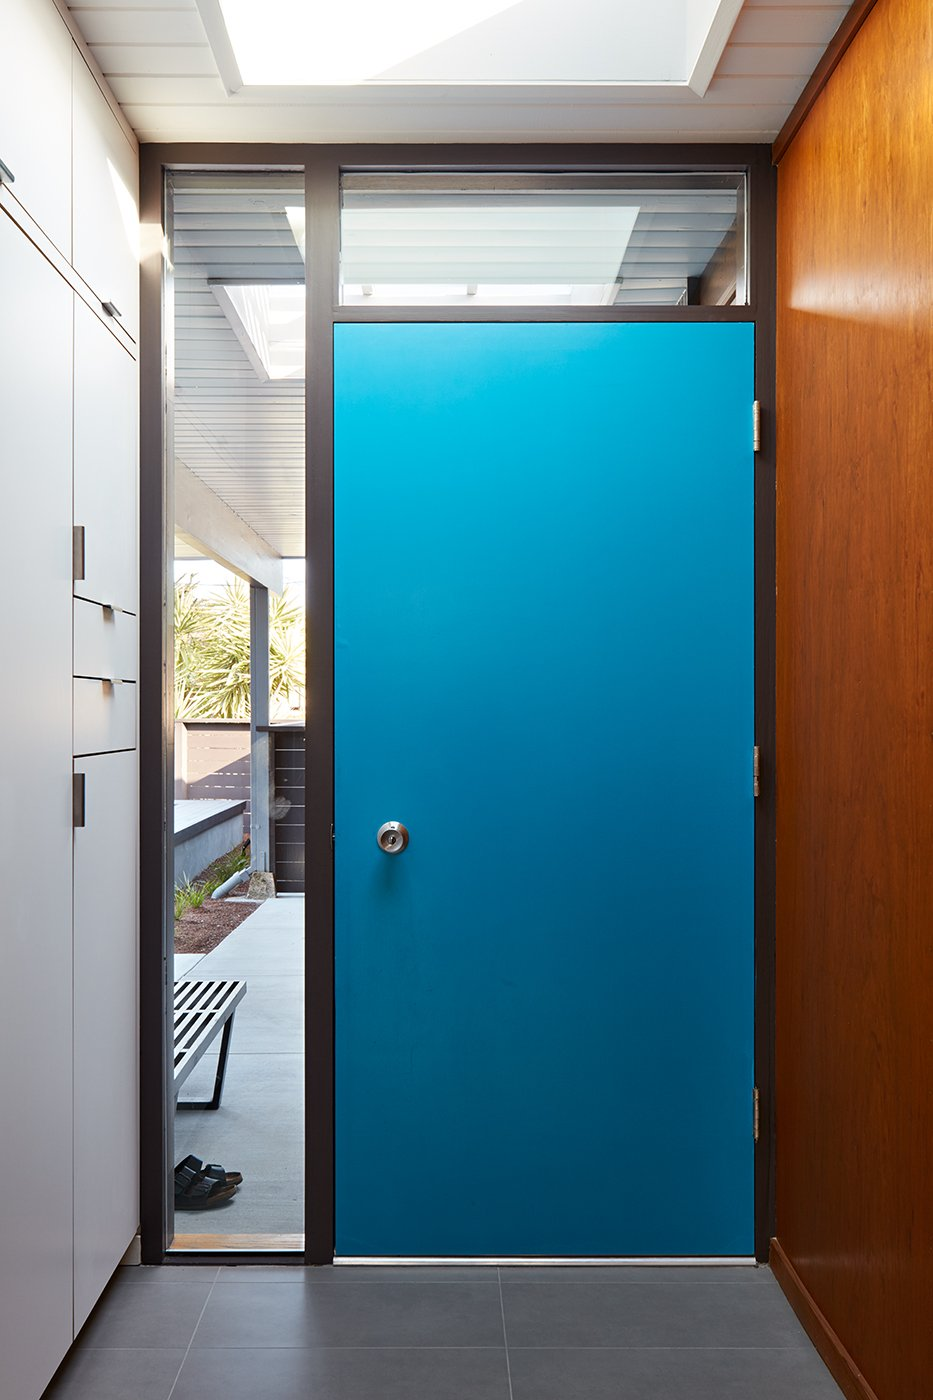 Eichler house in San Mateo Highlands - Klopf architecture - entrance door